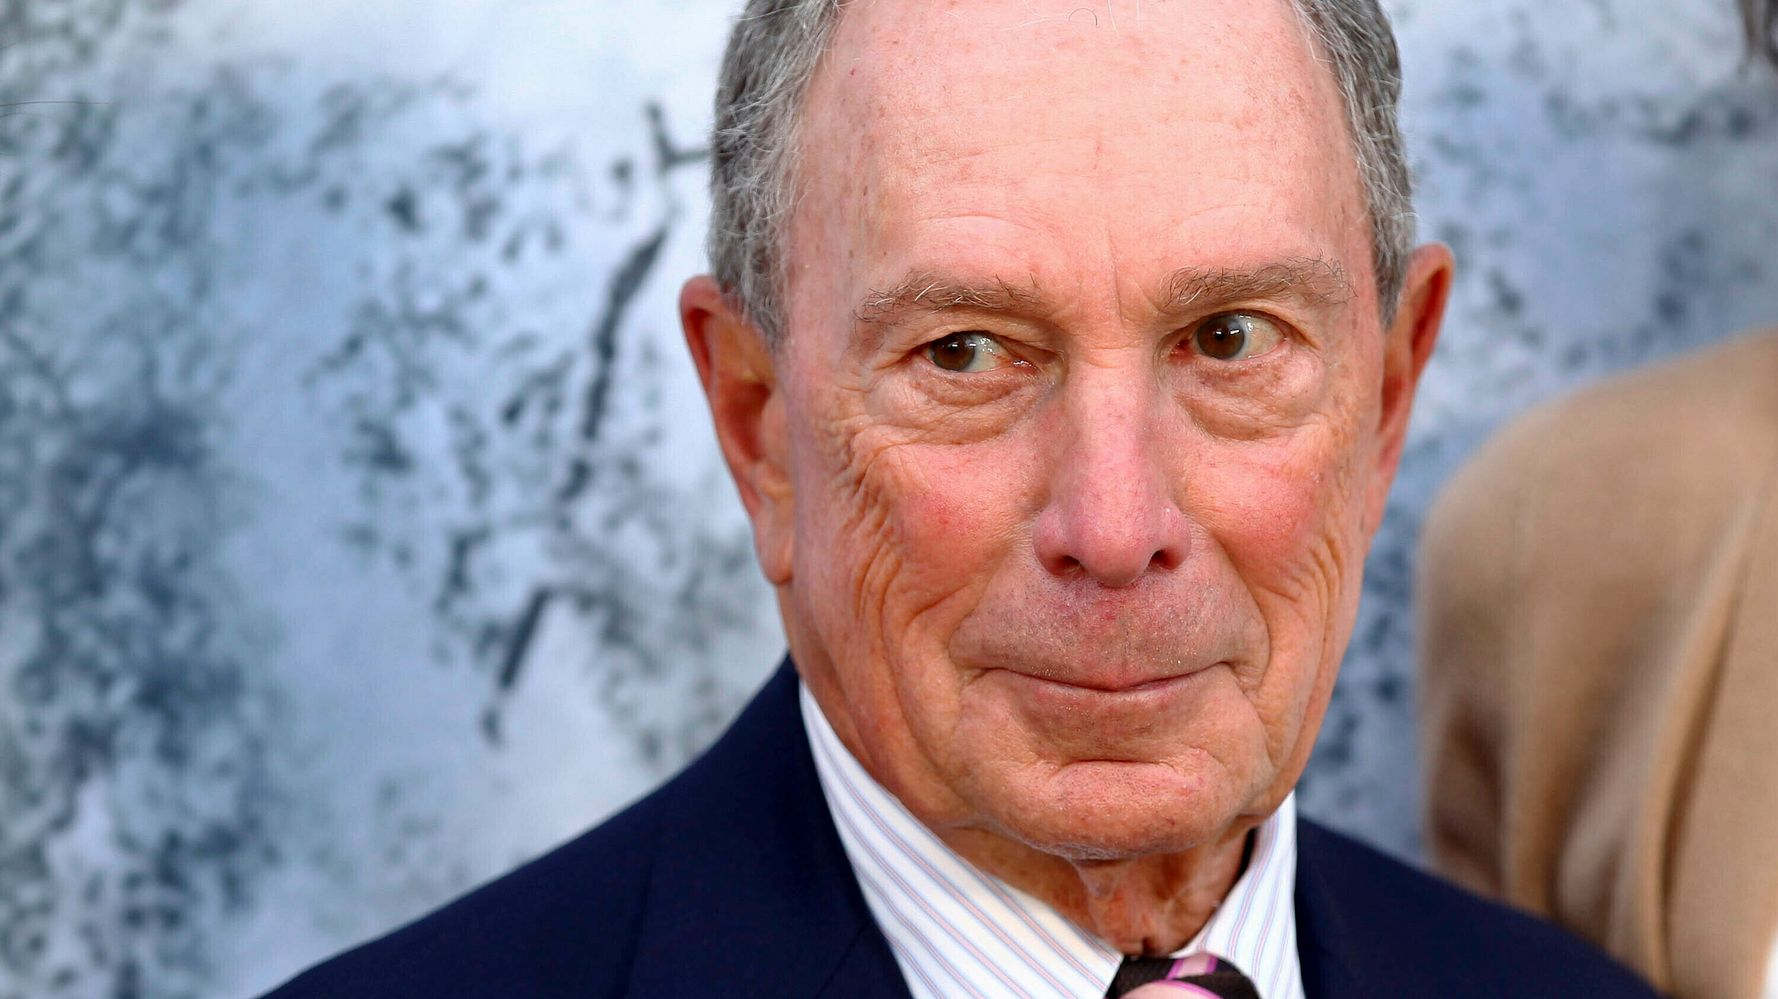 Michael Bloomberg Vows To Refuse Political Donations If He Runs For President